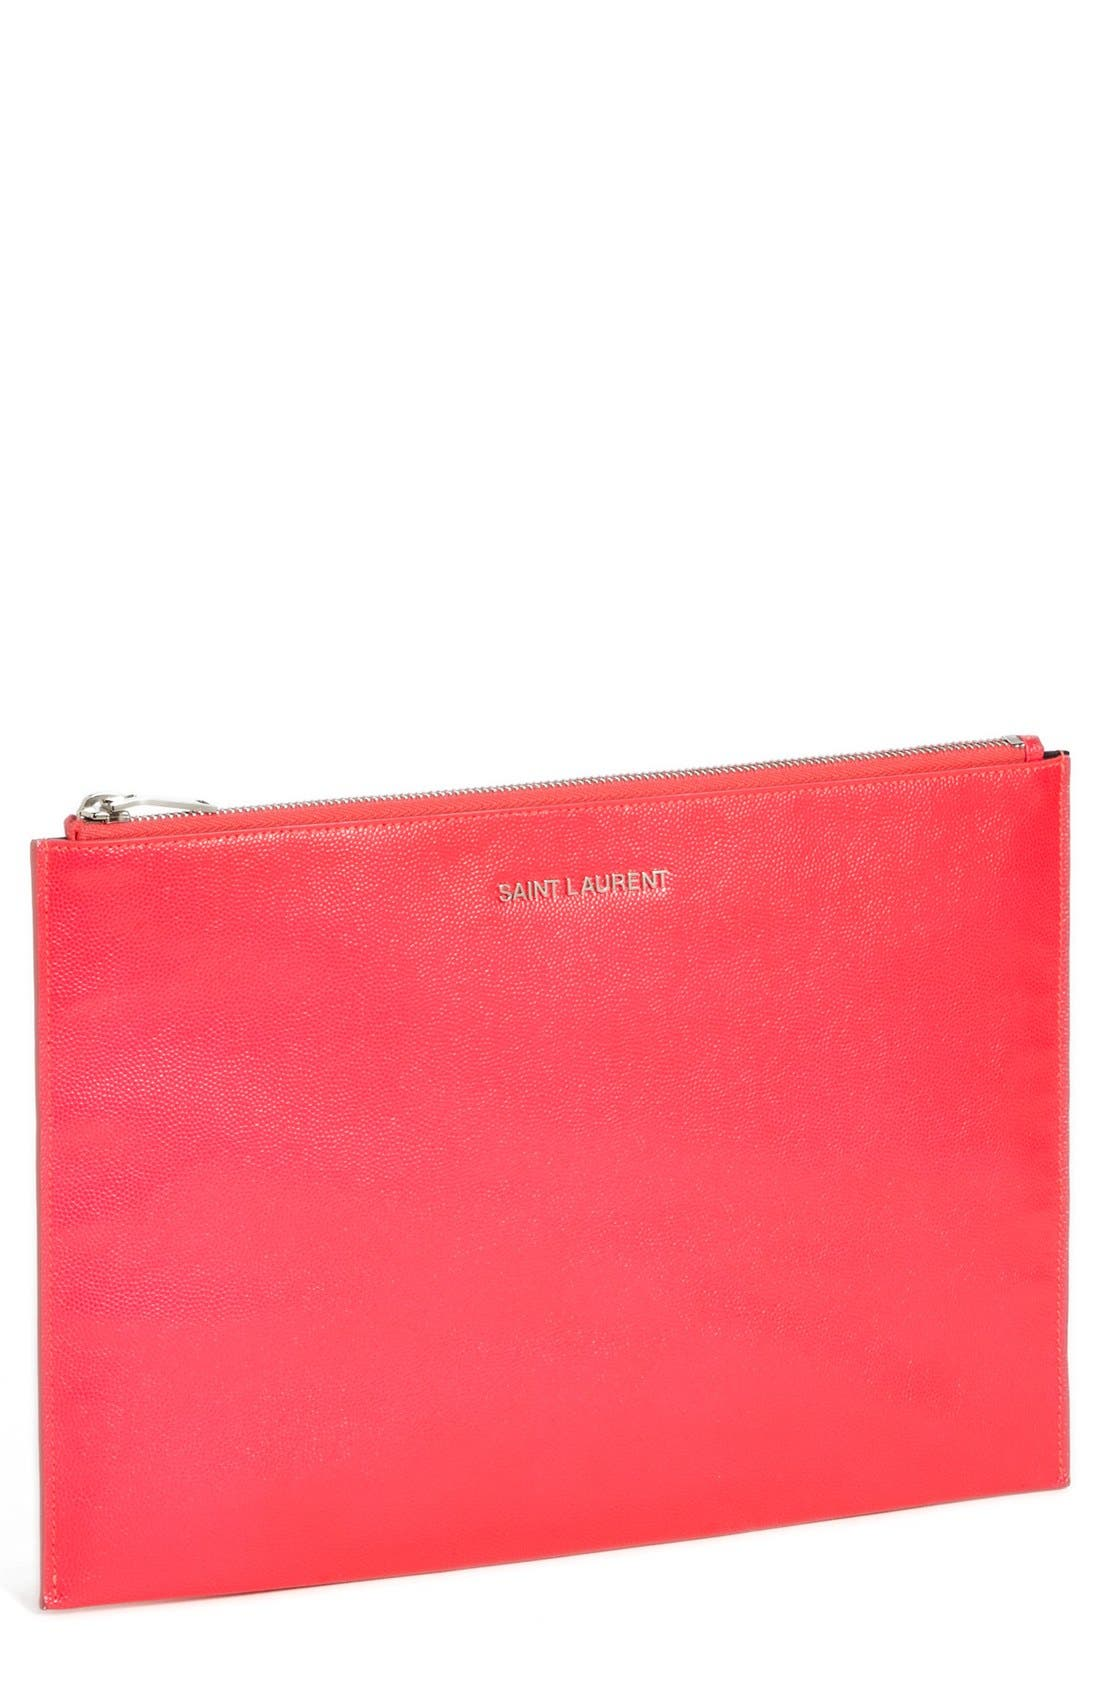 Alternate Image 1 Selected - Saint Laurent 'Letters' Zip Clutch